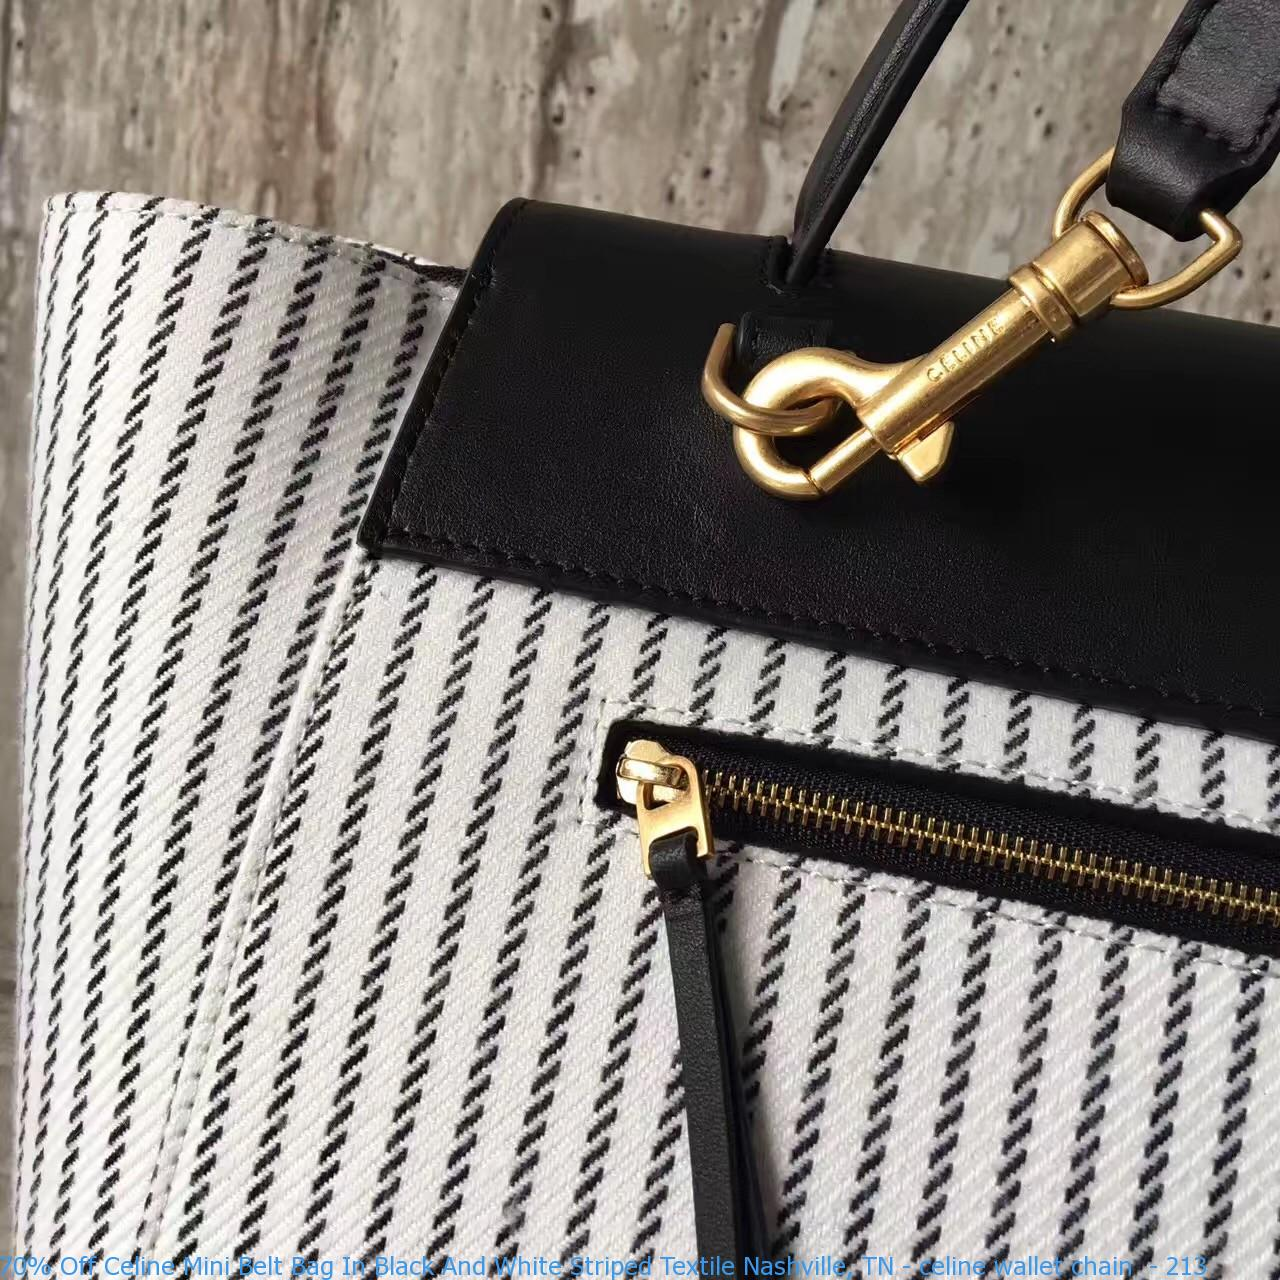 0ba531a33b73b 70% Off Celine Mini Belt Bag In Black And White Striped Textile ...